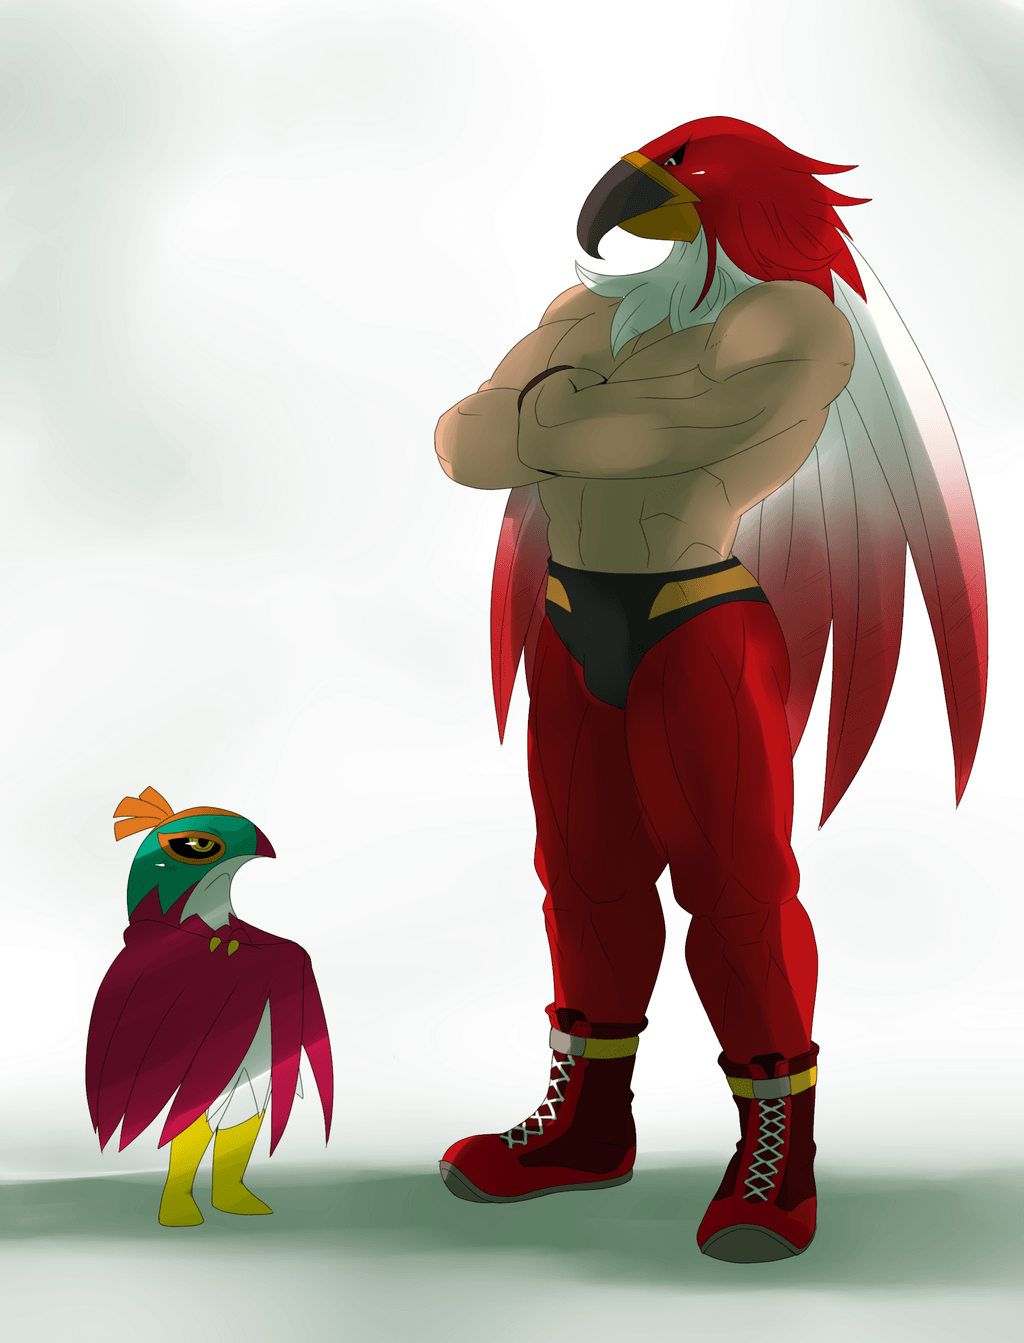 Hawlucha from Pokemon and Tizoc from King of Fighters.